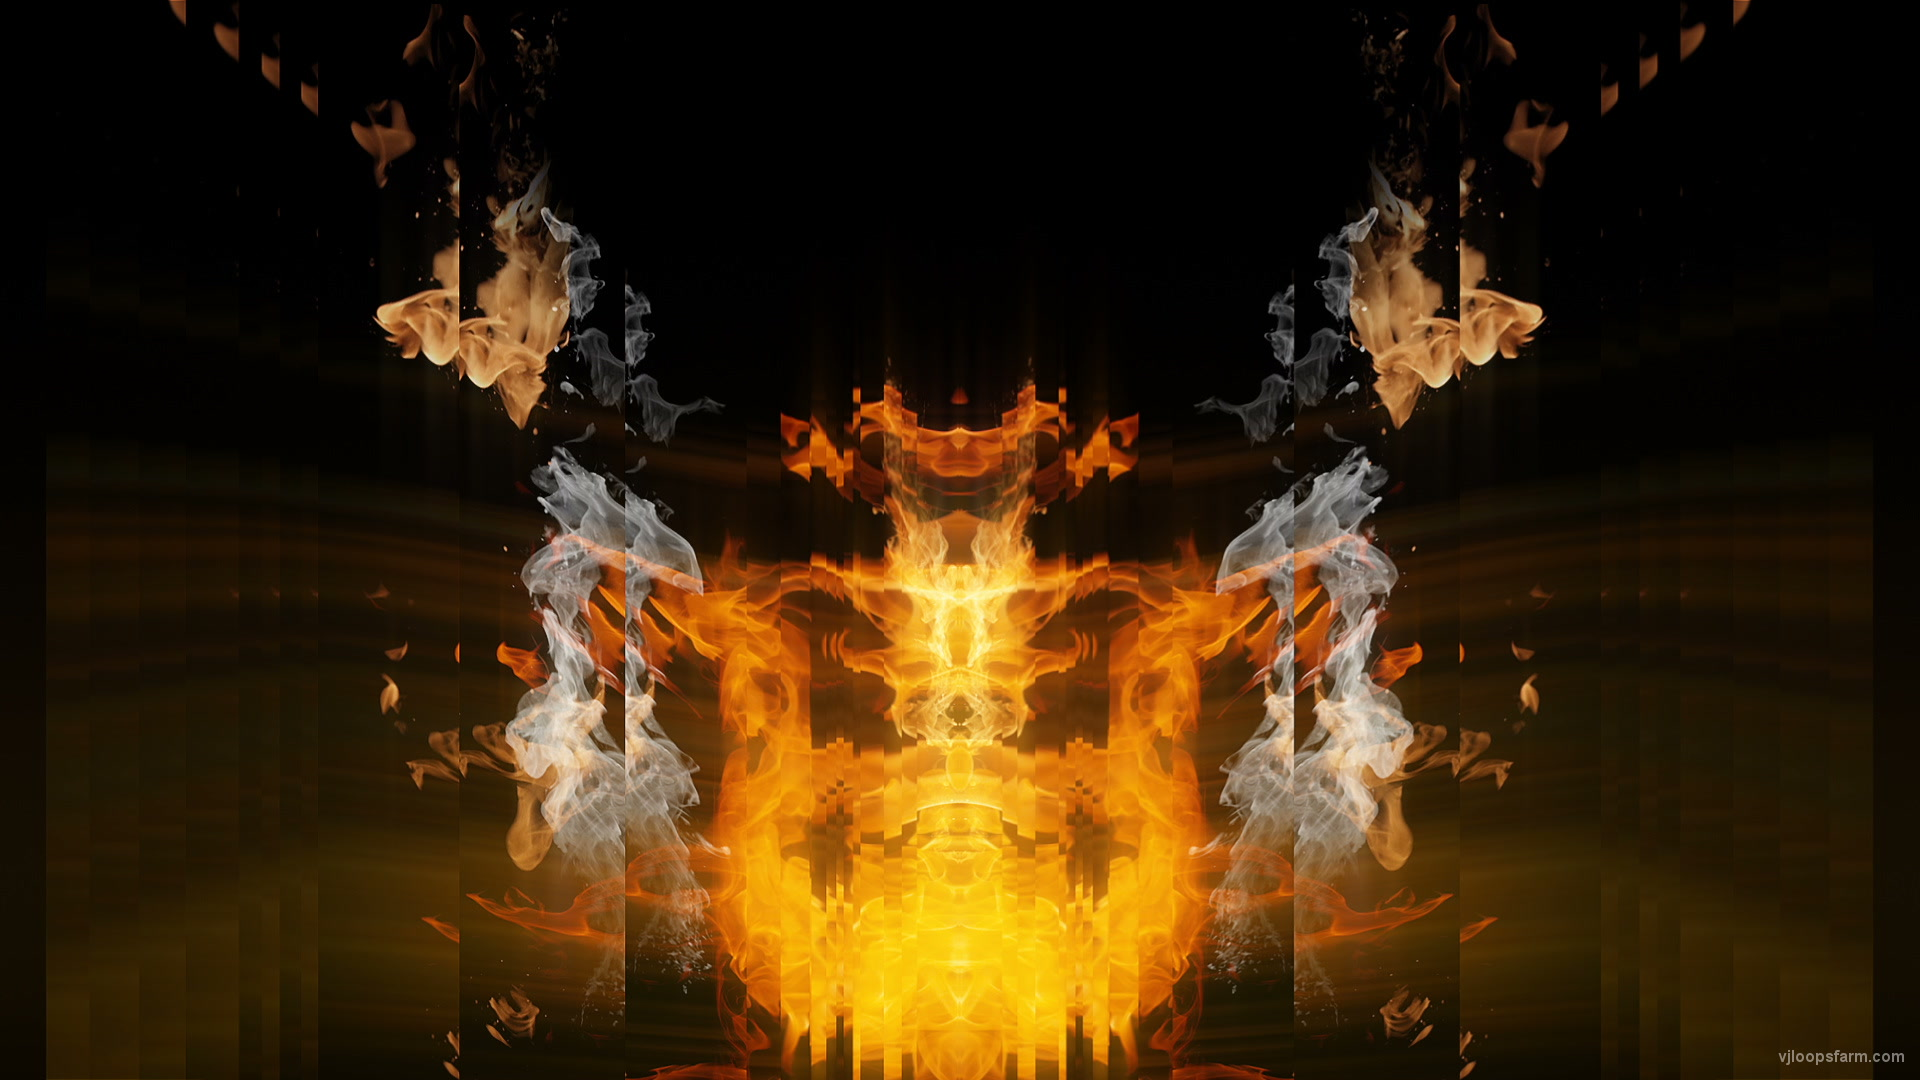 vj video background Psy-Fire-Stage-Event-Visuals-Flame-Video-Art-VJ-Loop_003